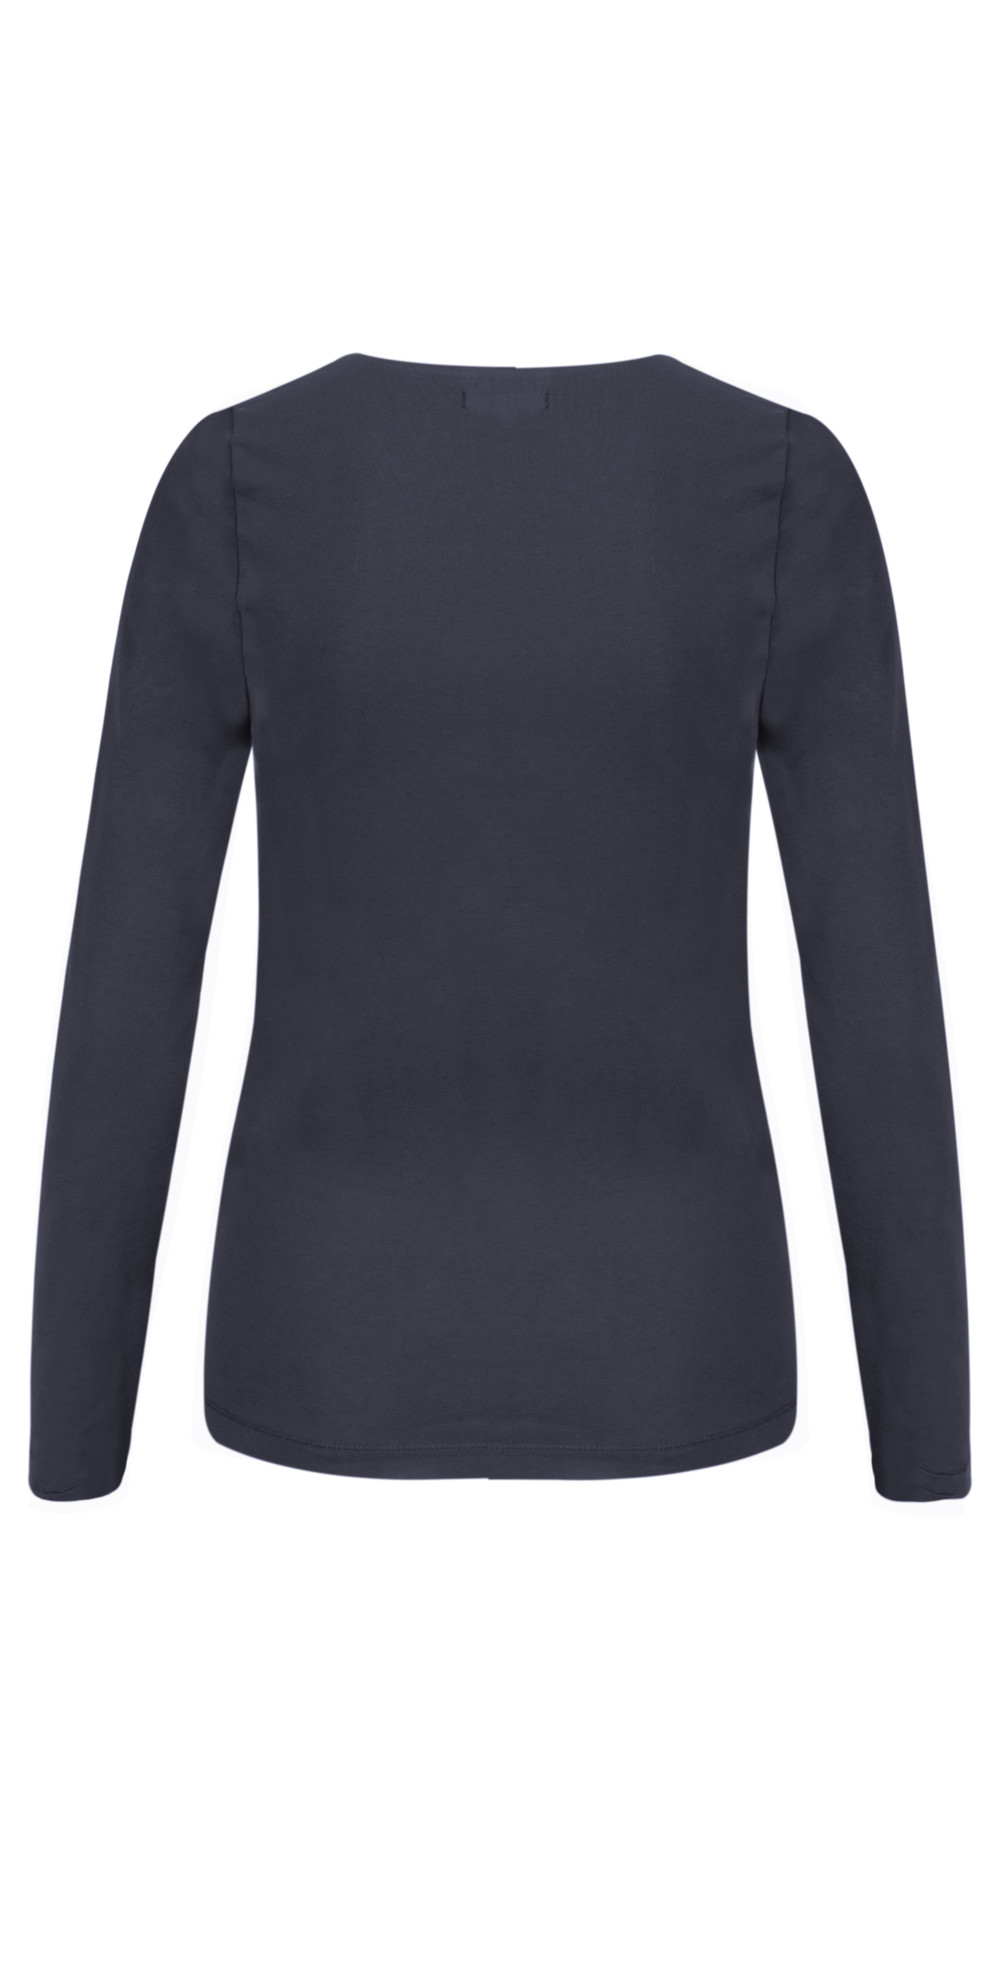 Essentials Long Sleeve Stretch Cotton Jersey Top main image